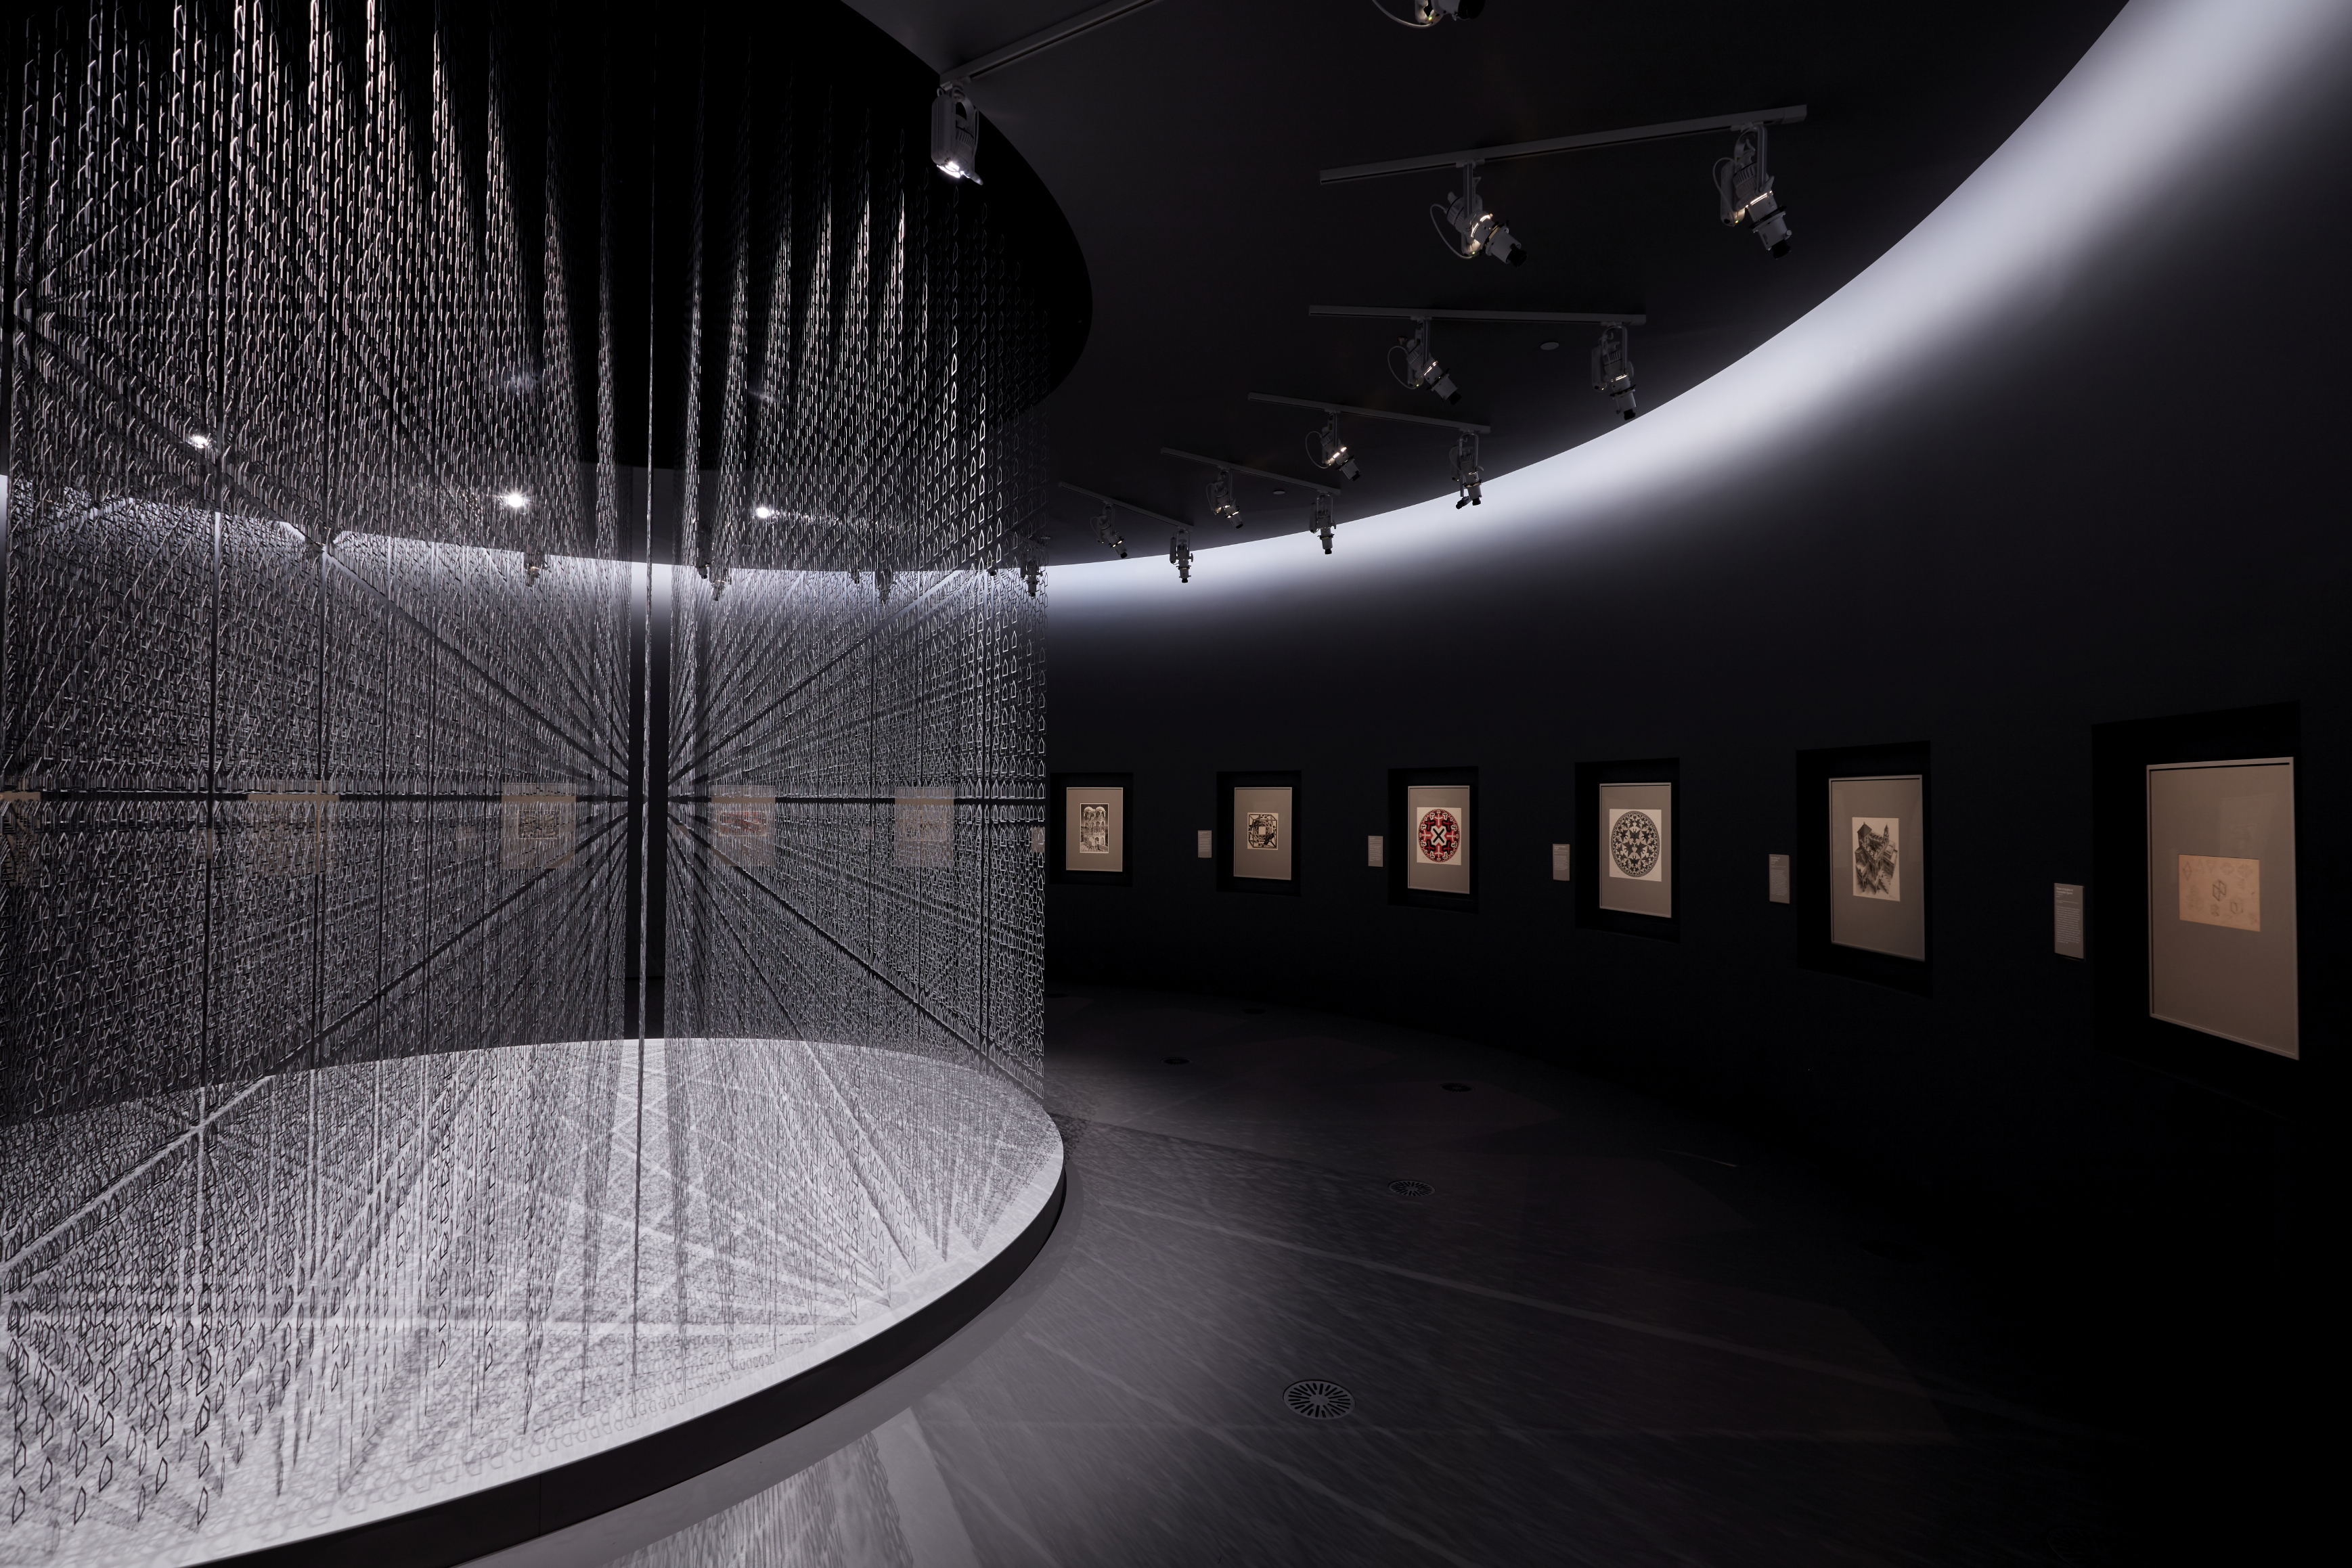 Installation view of Gathered House in Escher x nendo | Between Two Worlds exhibition space at NGV International running from 2 December 2018 – 7 April 2019